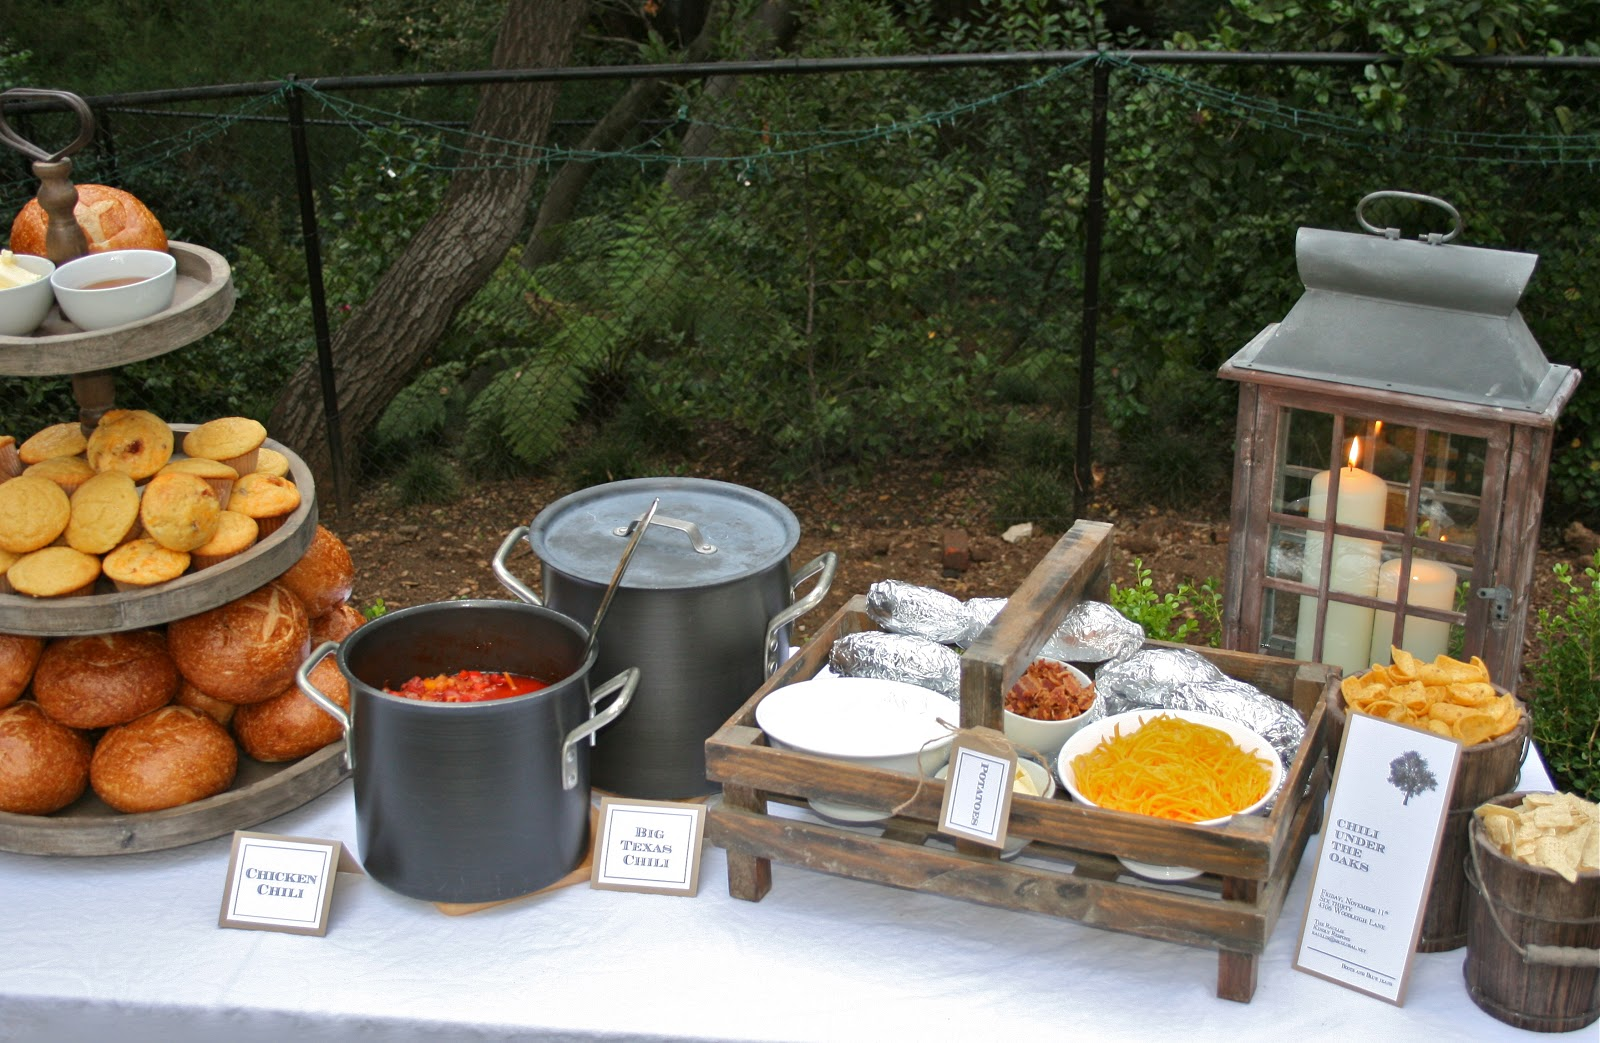 Fall party idea chili under the oaks bloom designs for Food bar ideas for a party